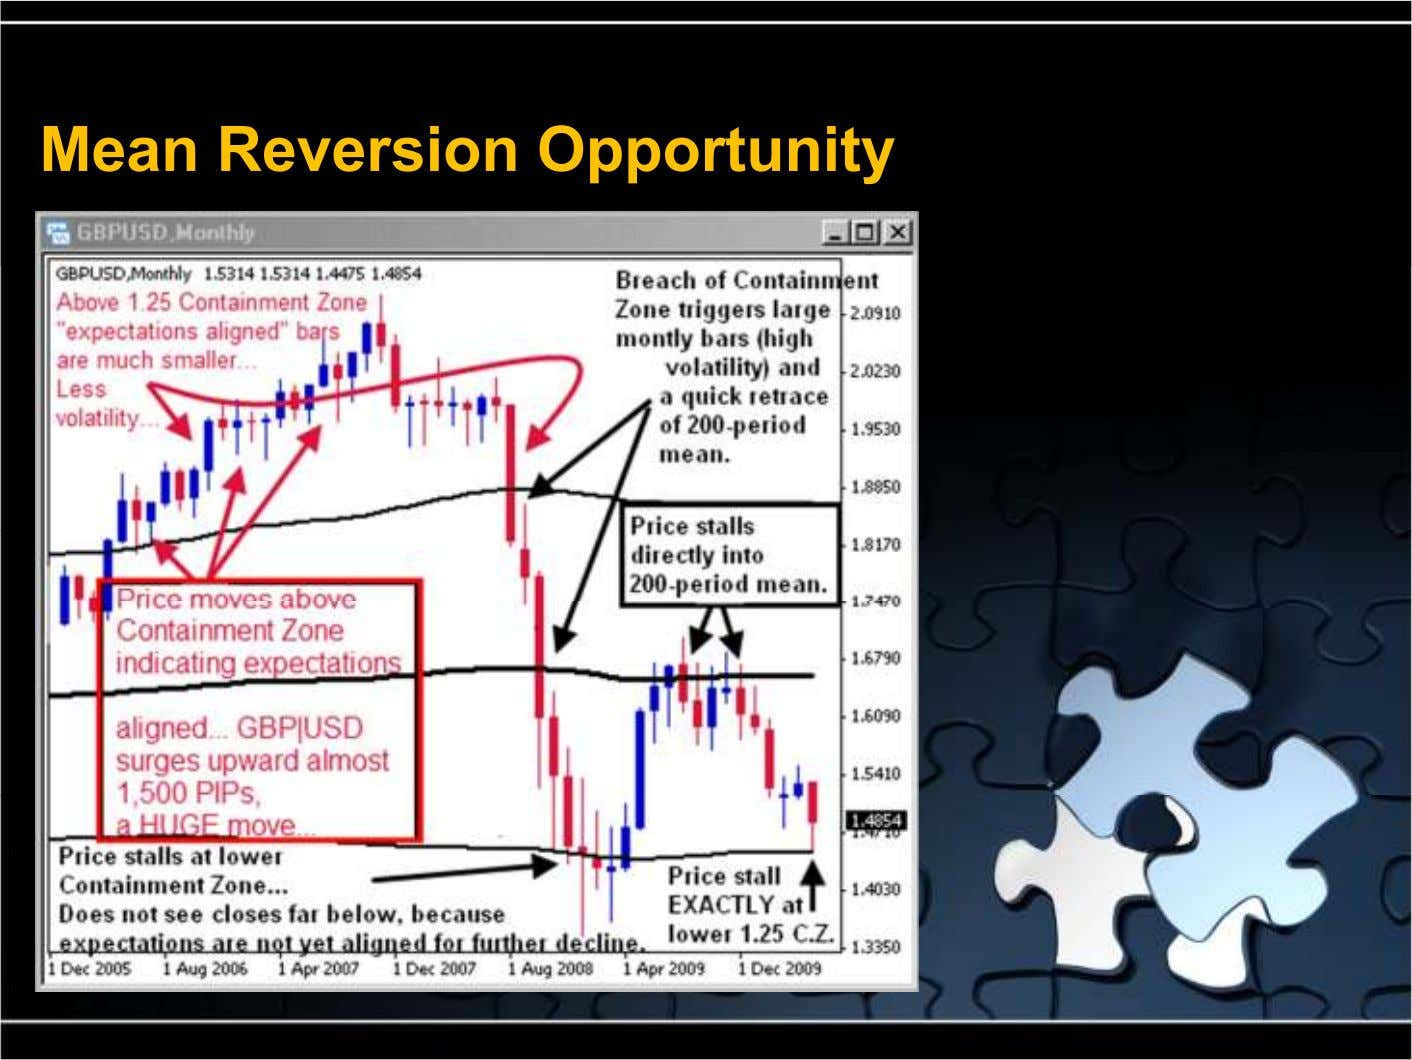 Mean Reversion Opportunity